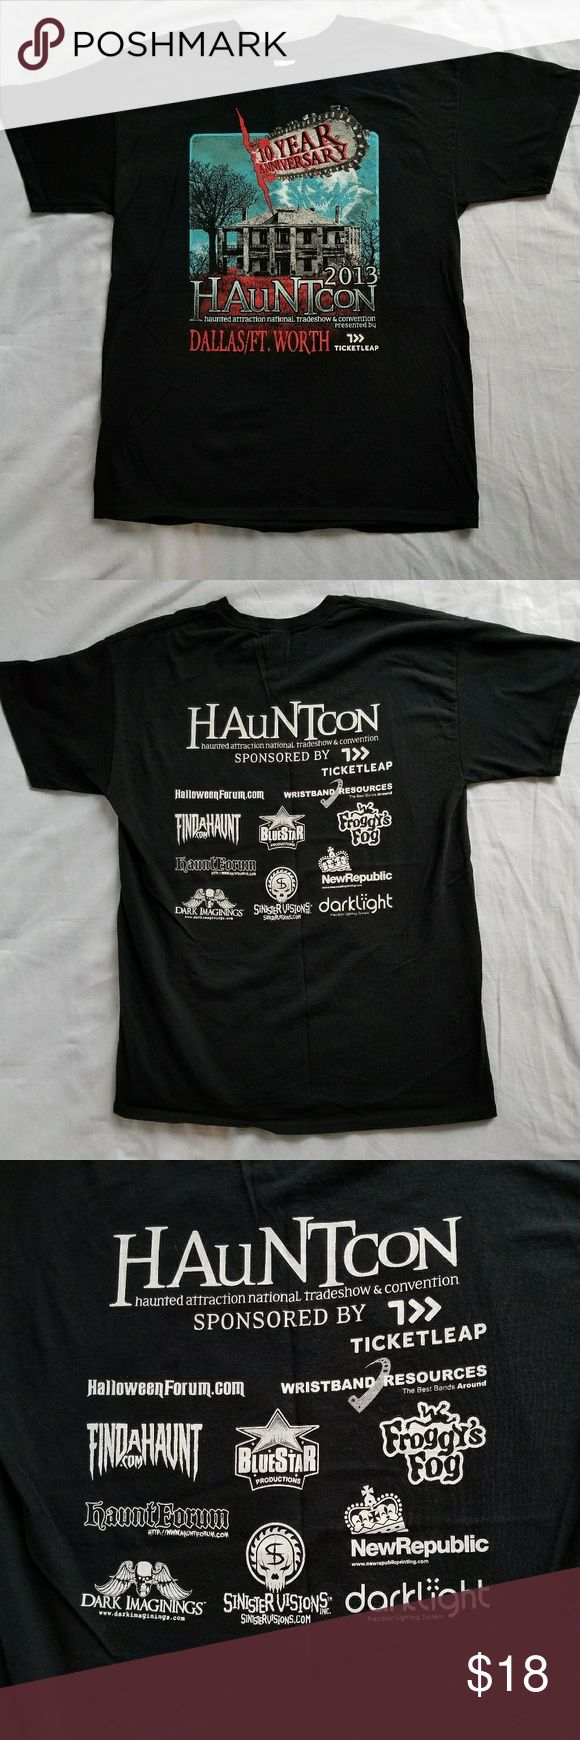 Dallas HAUNTCON Black Tee Men's Halloween New L 10th Anniversary 2013 Dallas HAUNT-CON black t-shirt men's size large with haunted house mansion on front. Shirts were made for the Dallas Haunt Convention several years ago, and this design is no longer being sold. Great shirt for Halloween.   T-shirt is in excellent, new without tags condition. Since these shirts were sold at the convention, they did not come with hanging tags.  All of my items come from a very clean, pet, and smoke-free…